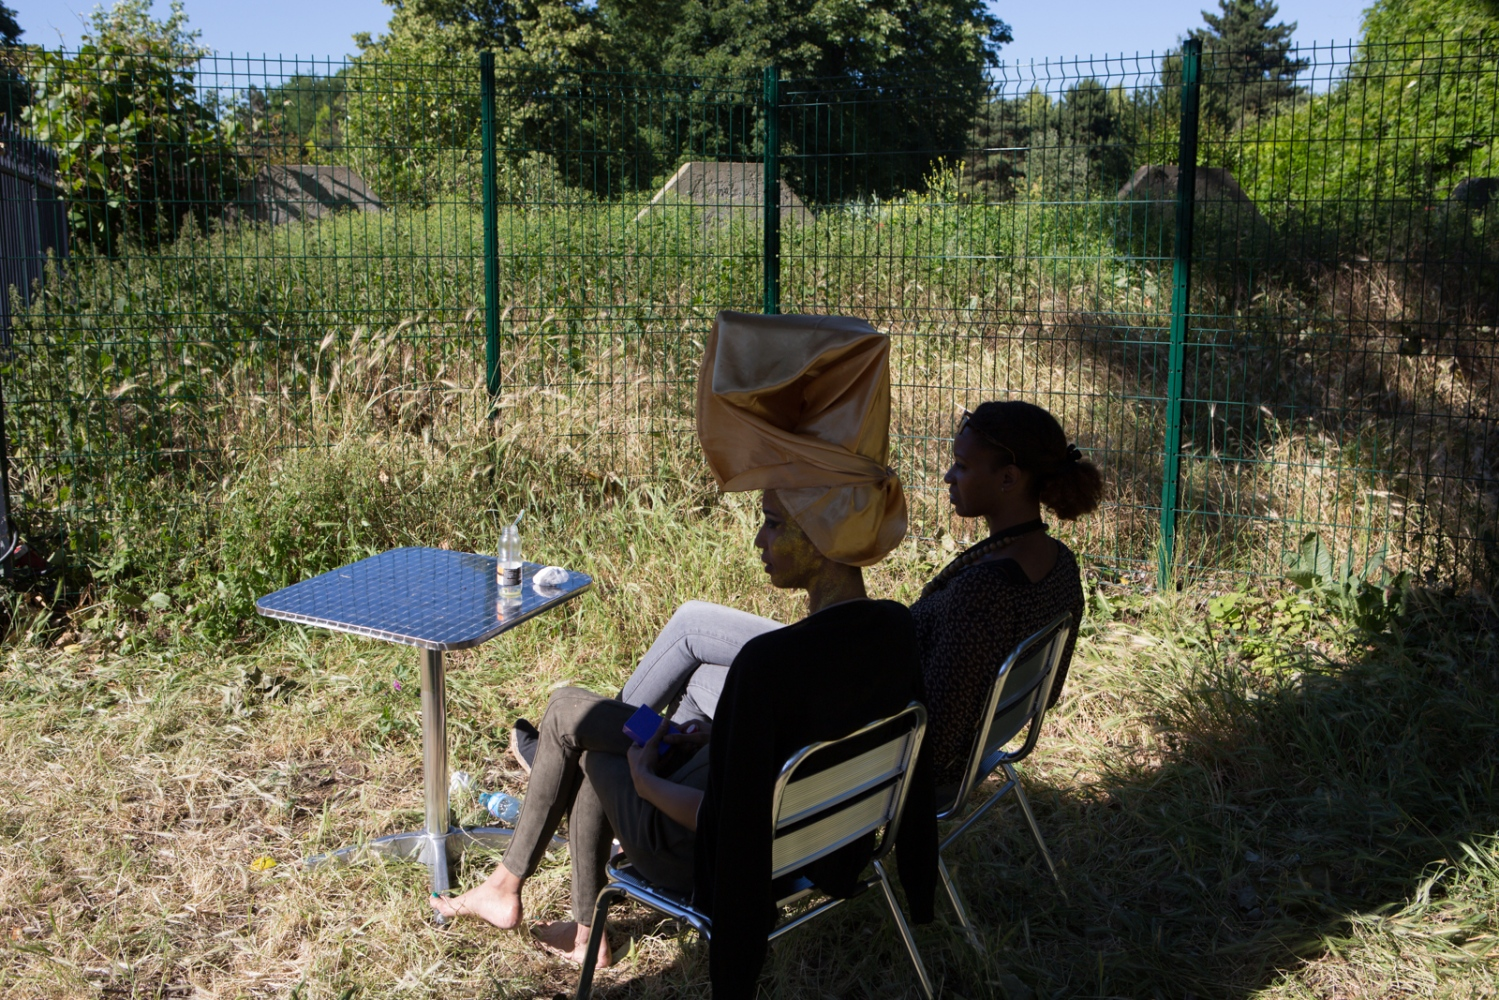 A model and her colleague having a coffee in the Parc Floral garden before preparting to enter the fashion show during the Natural Hair Academy event. Natural Hair Academy is an annual event that turns around beauty and cosmetics to natural Afro hair. Fashion shows, meeting, interventions about emmancipation and feminism are also part of their program. Vincennes, Ile de France, France